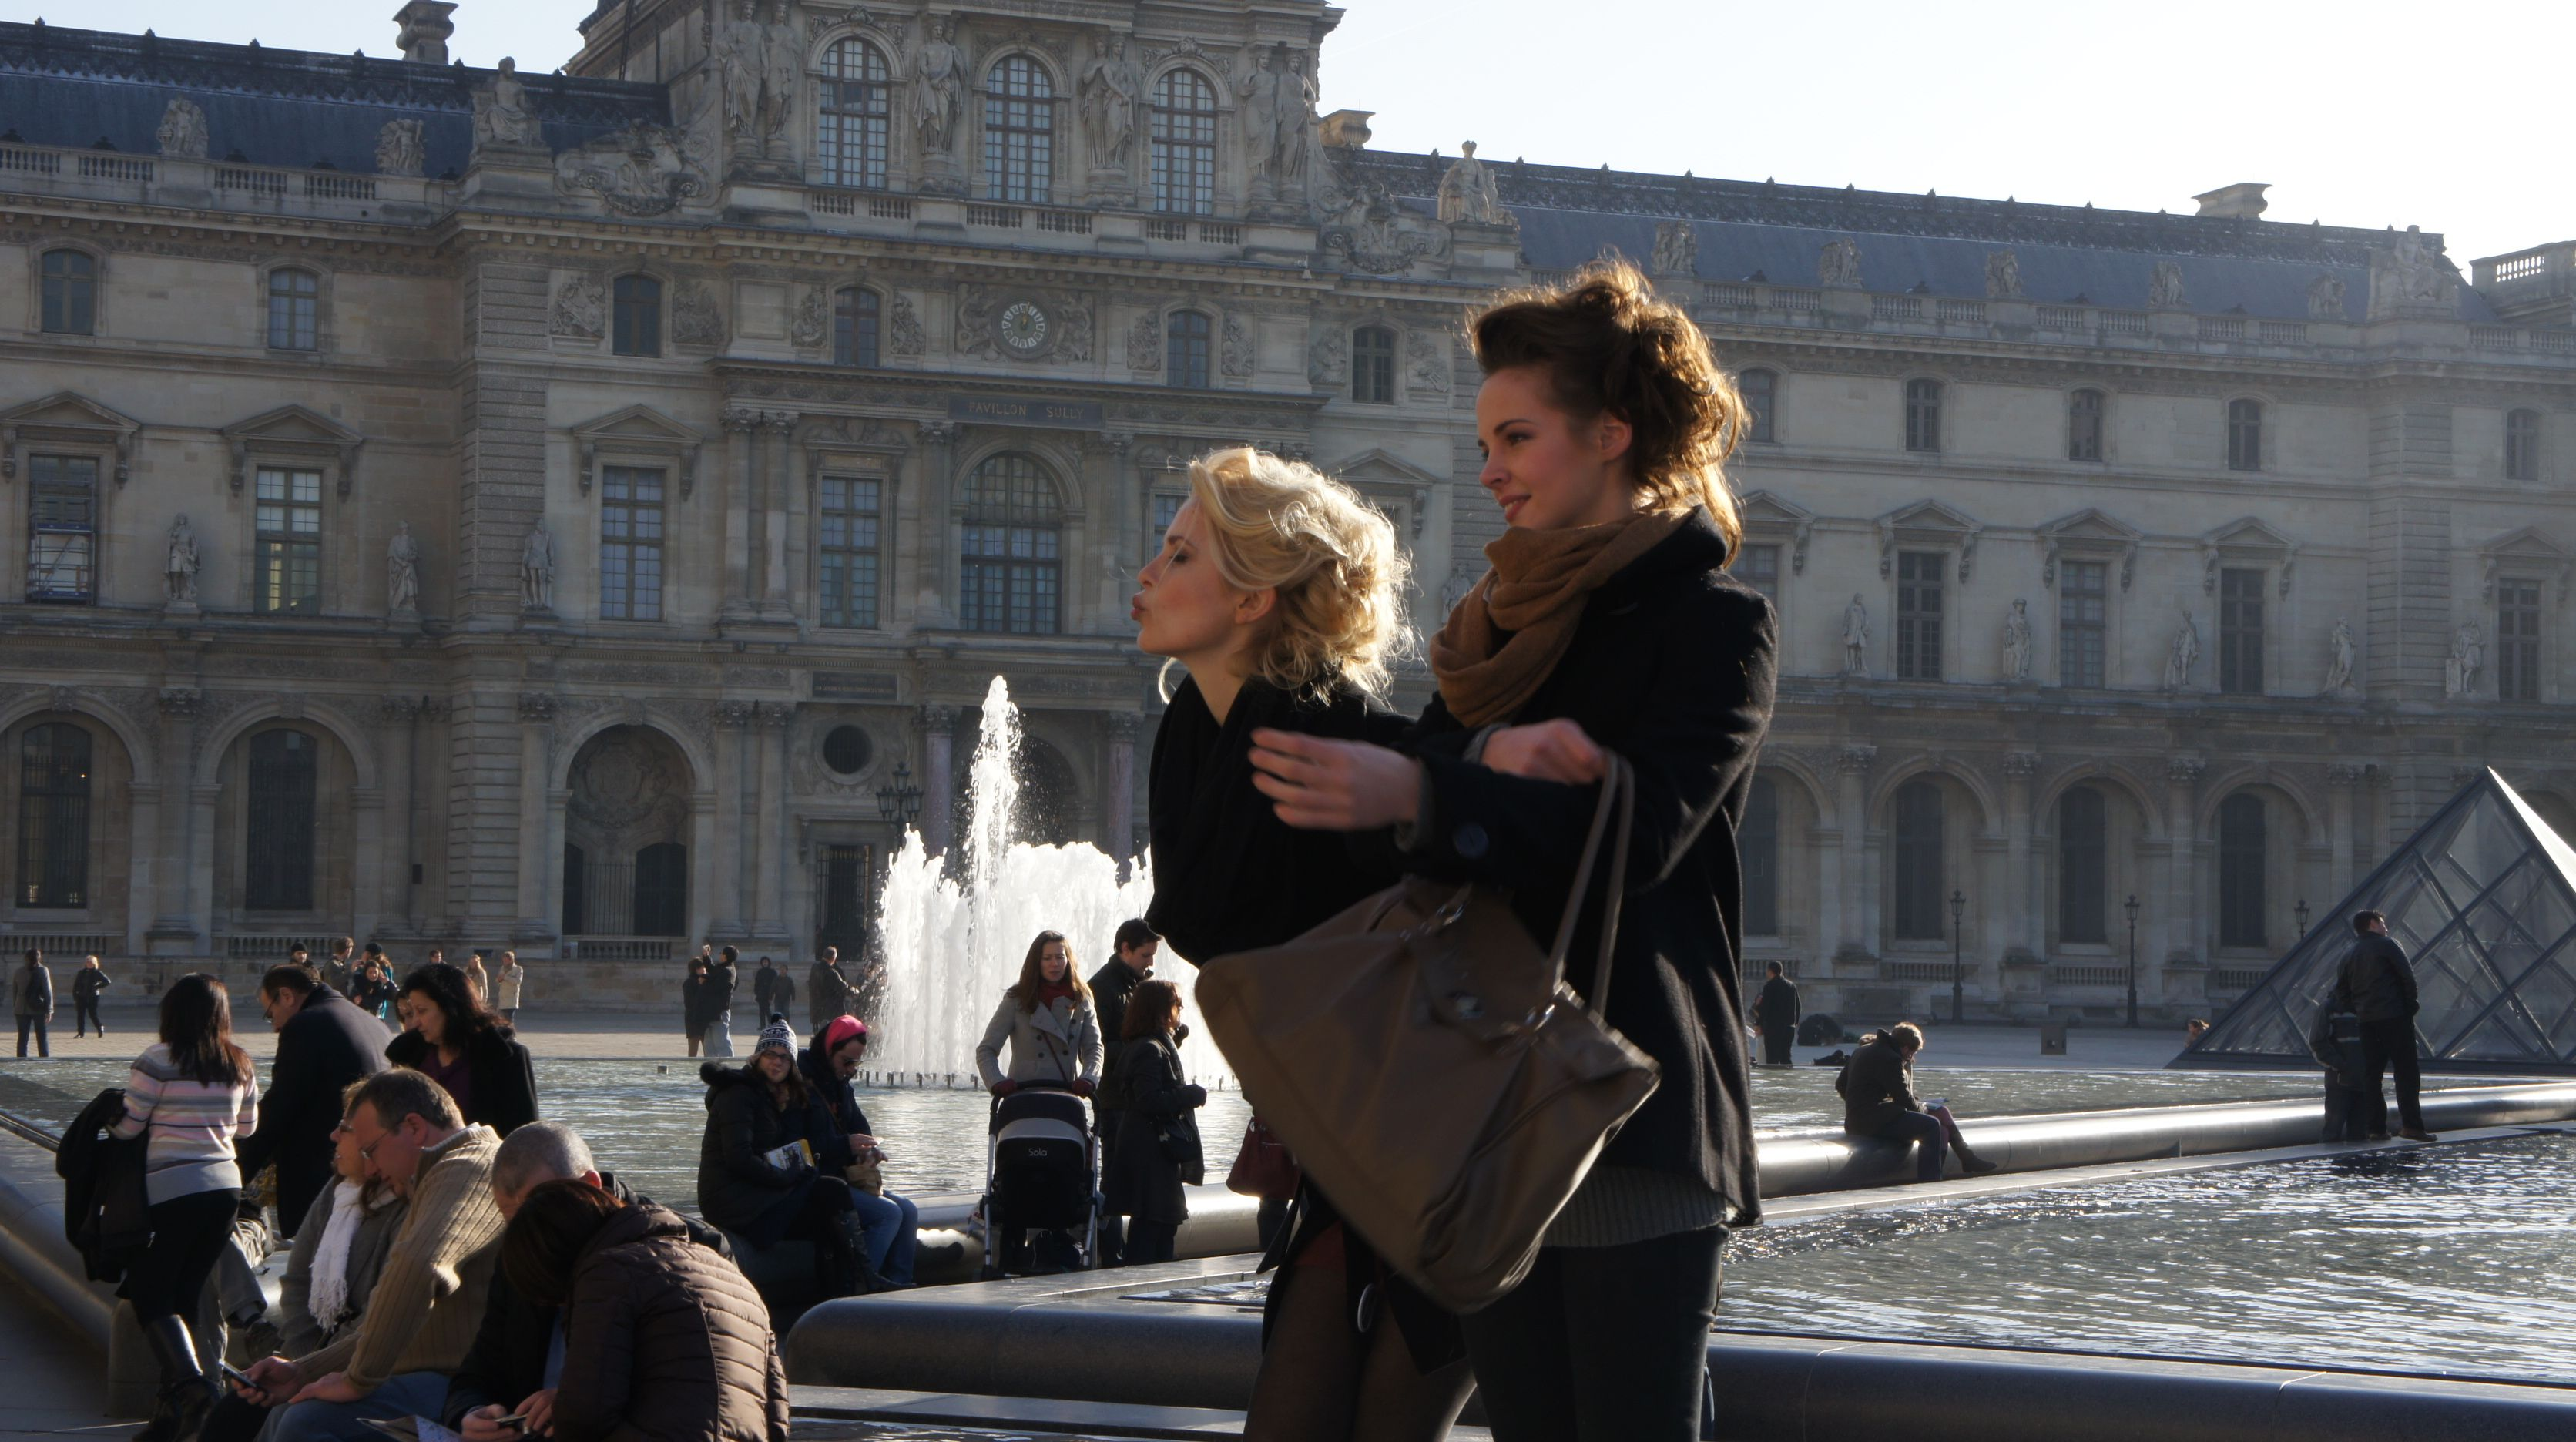 French Girls - Louvre